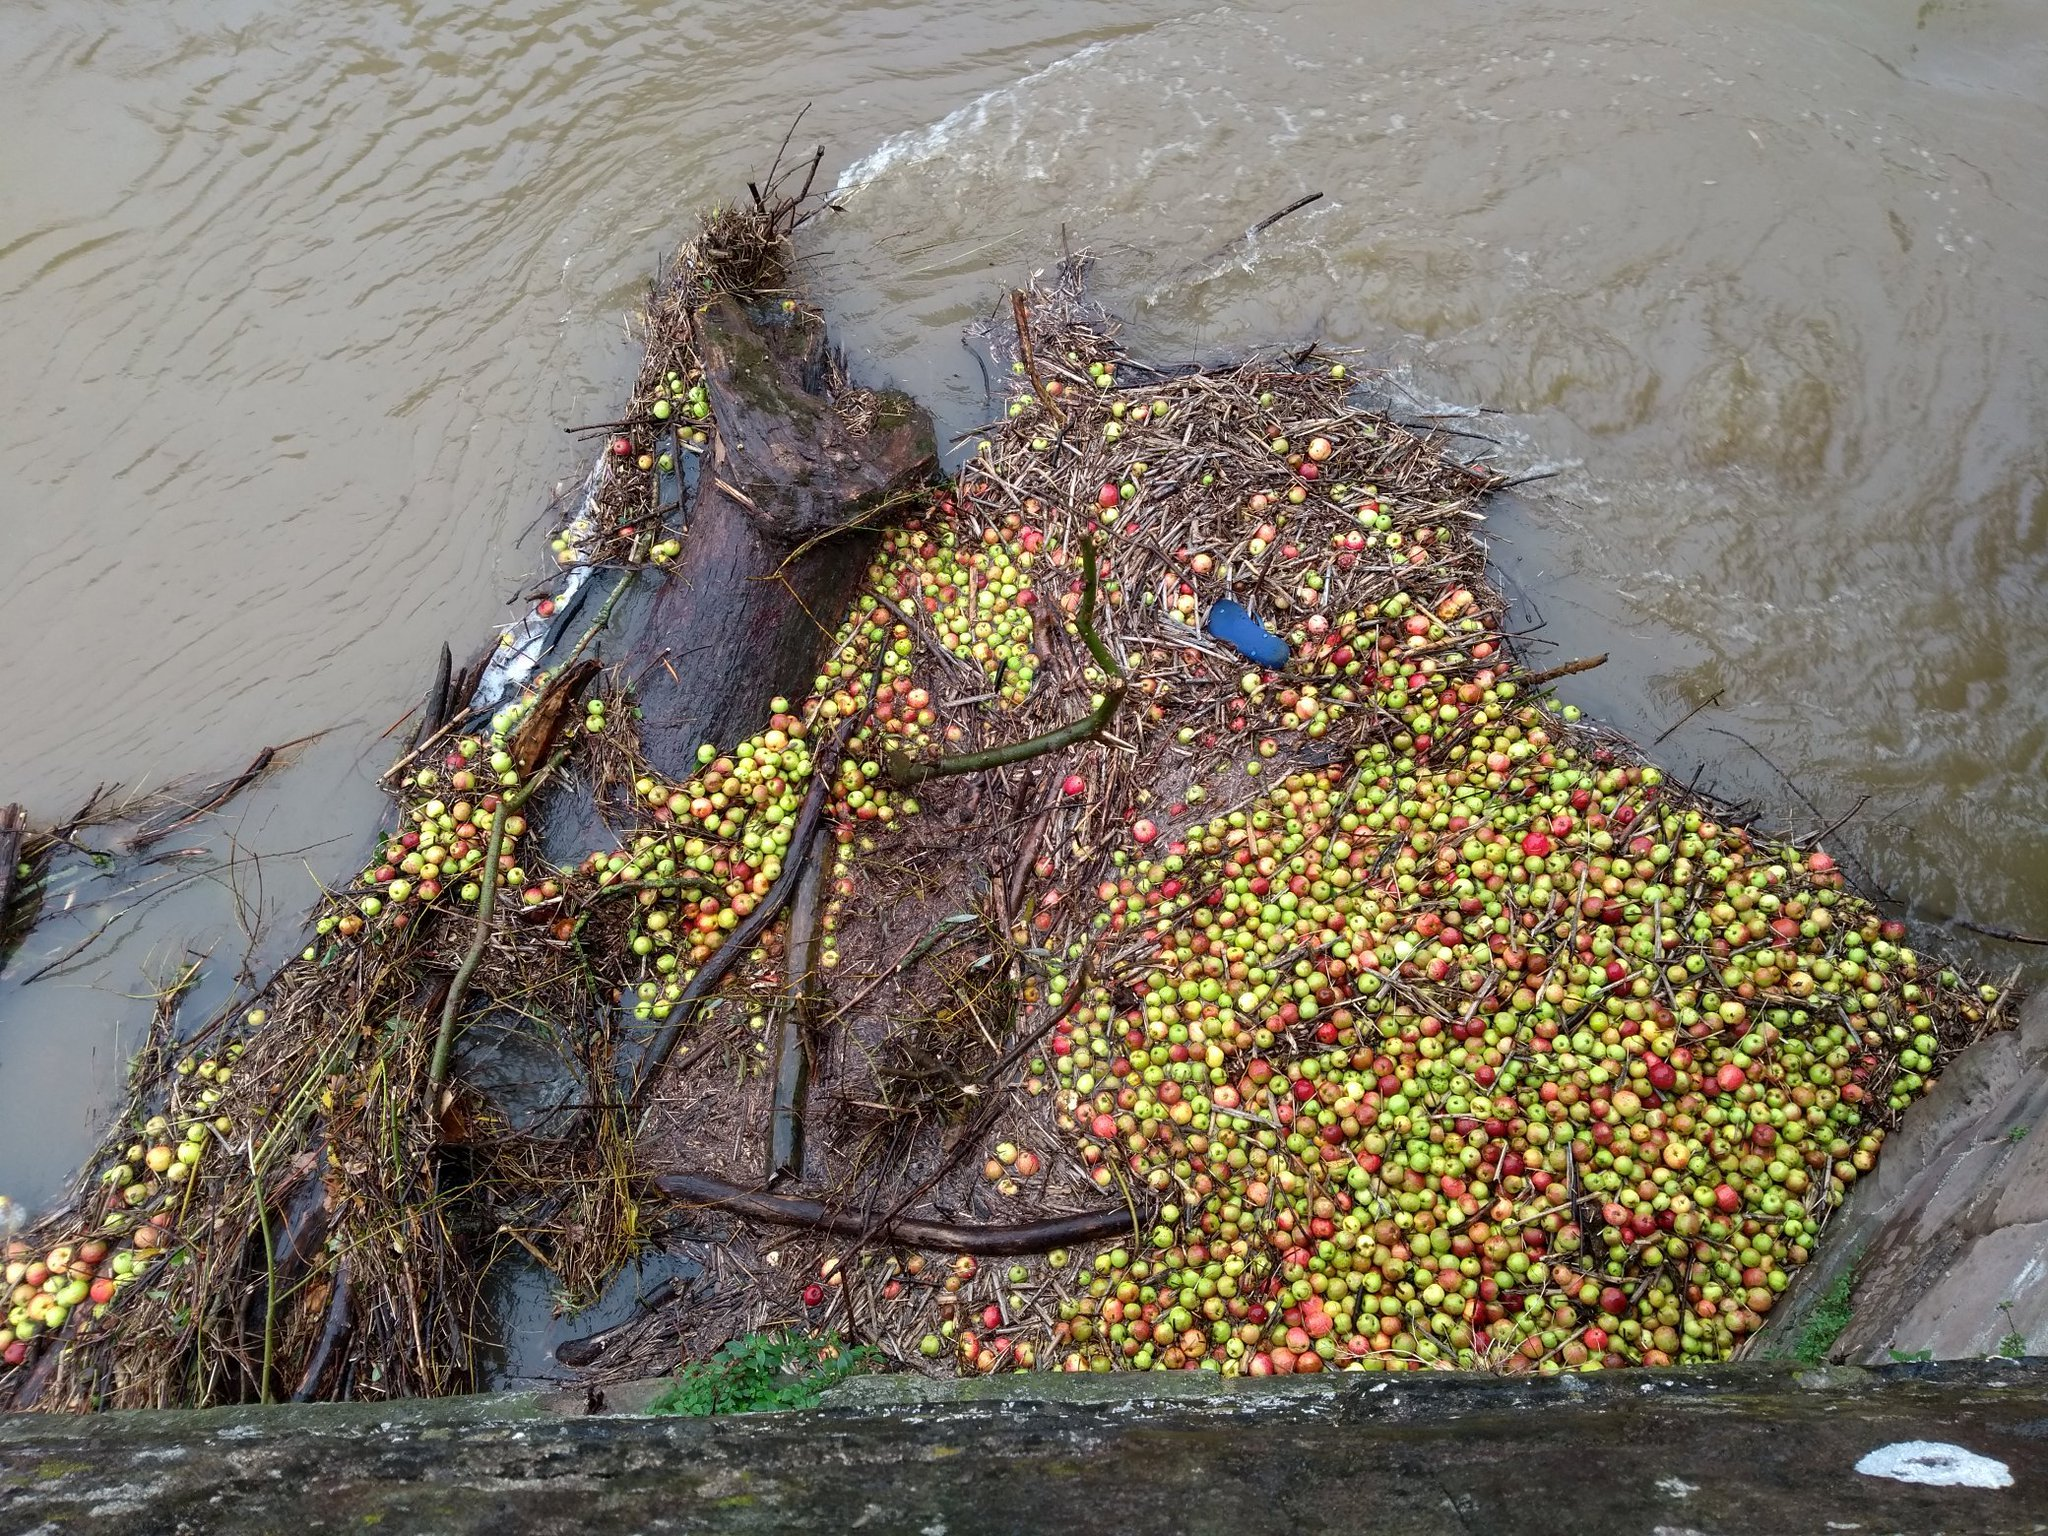 Apples washed down the river Wye by floods caught at the old bridge, Hereford. Picture by @the_jimi_bean